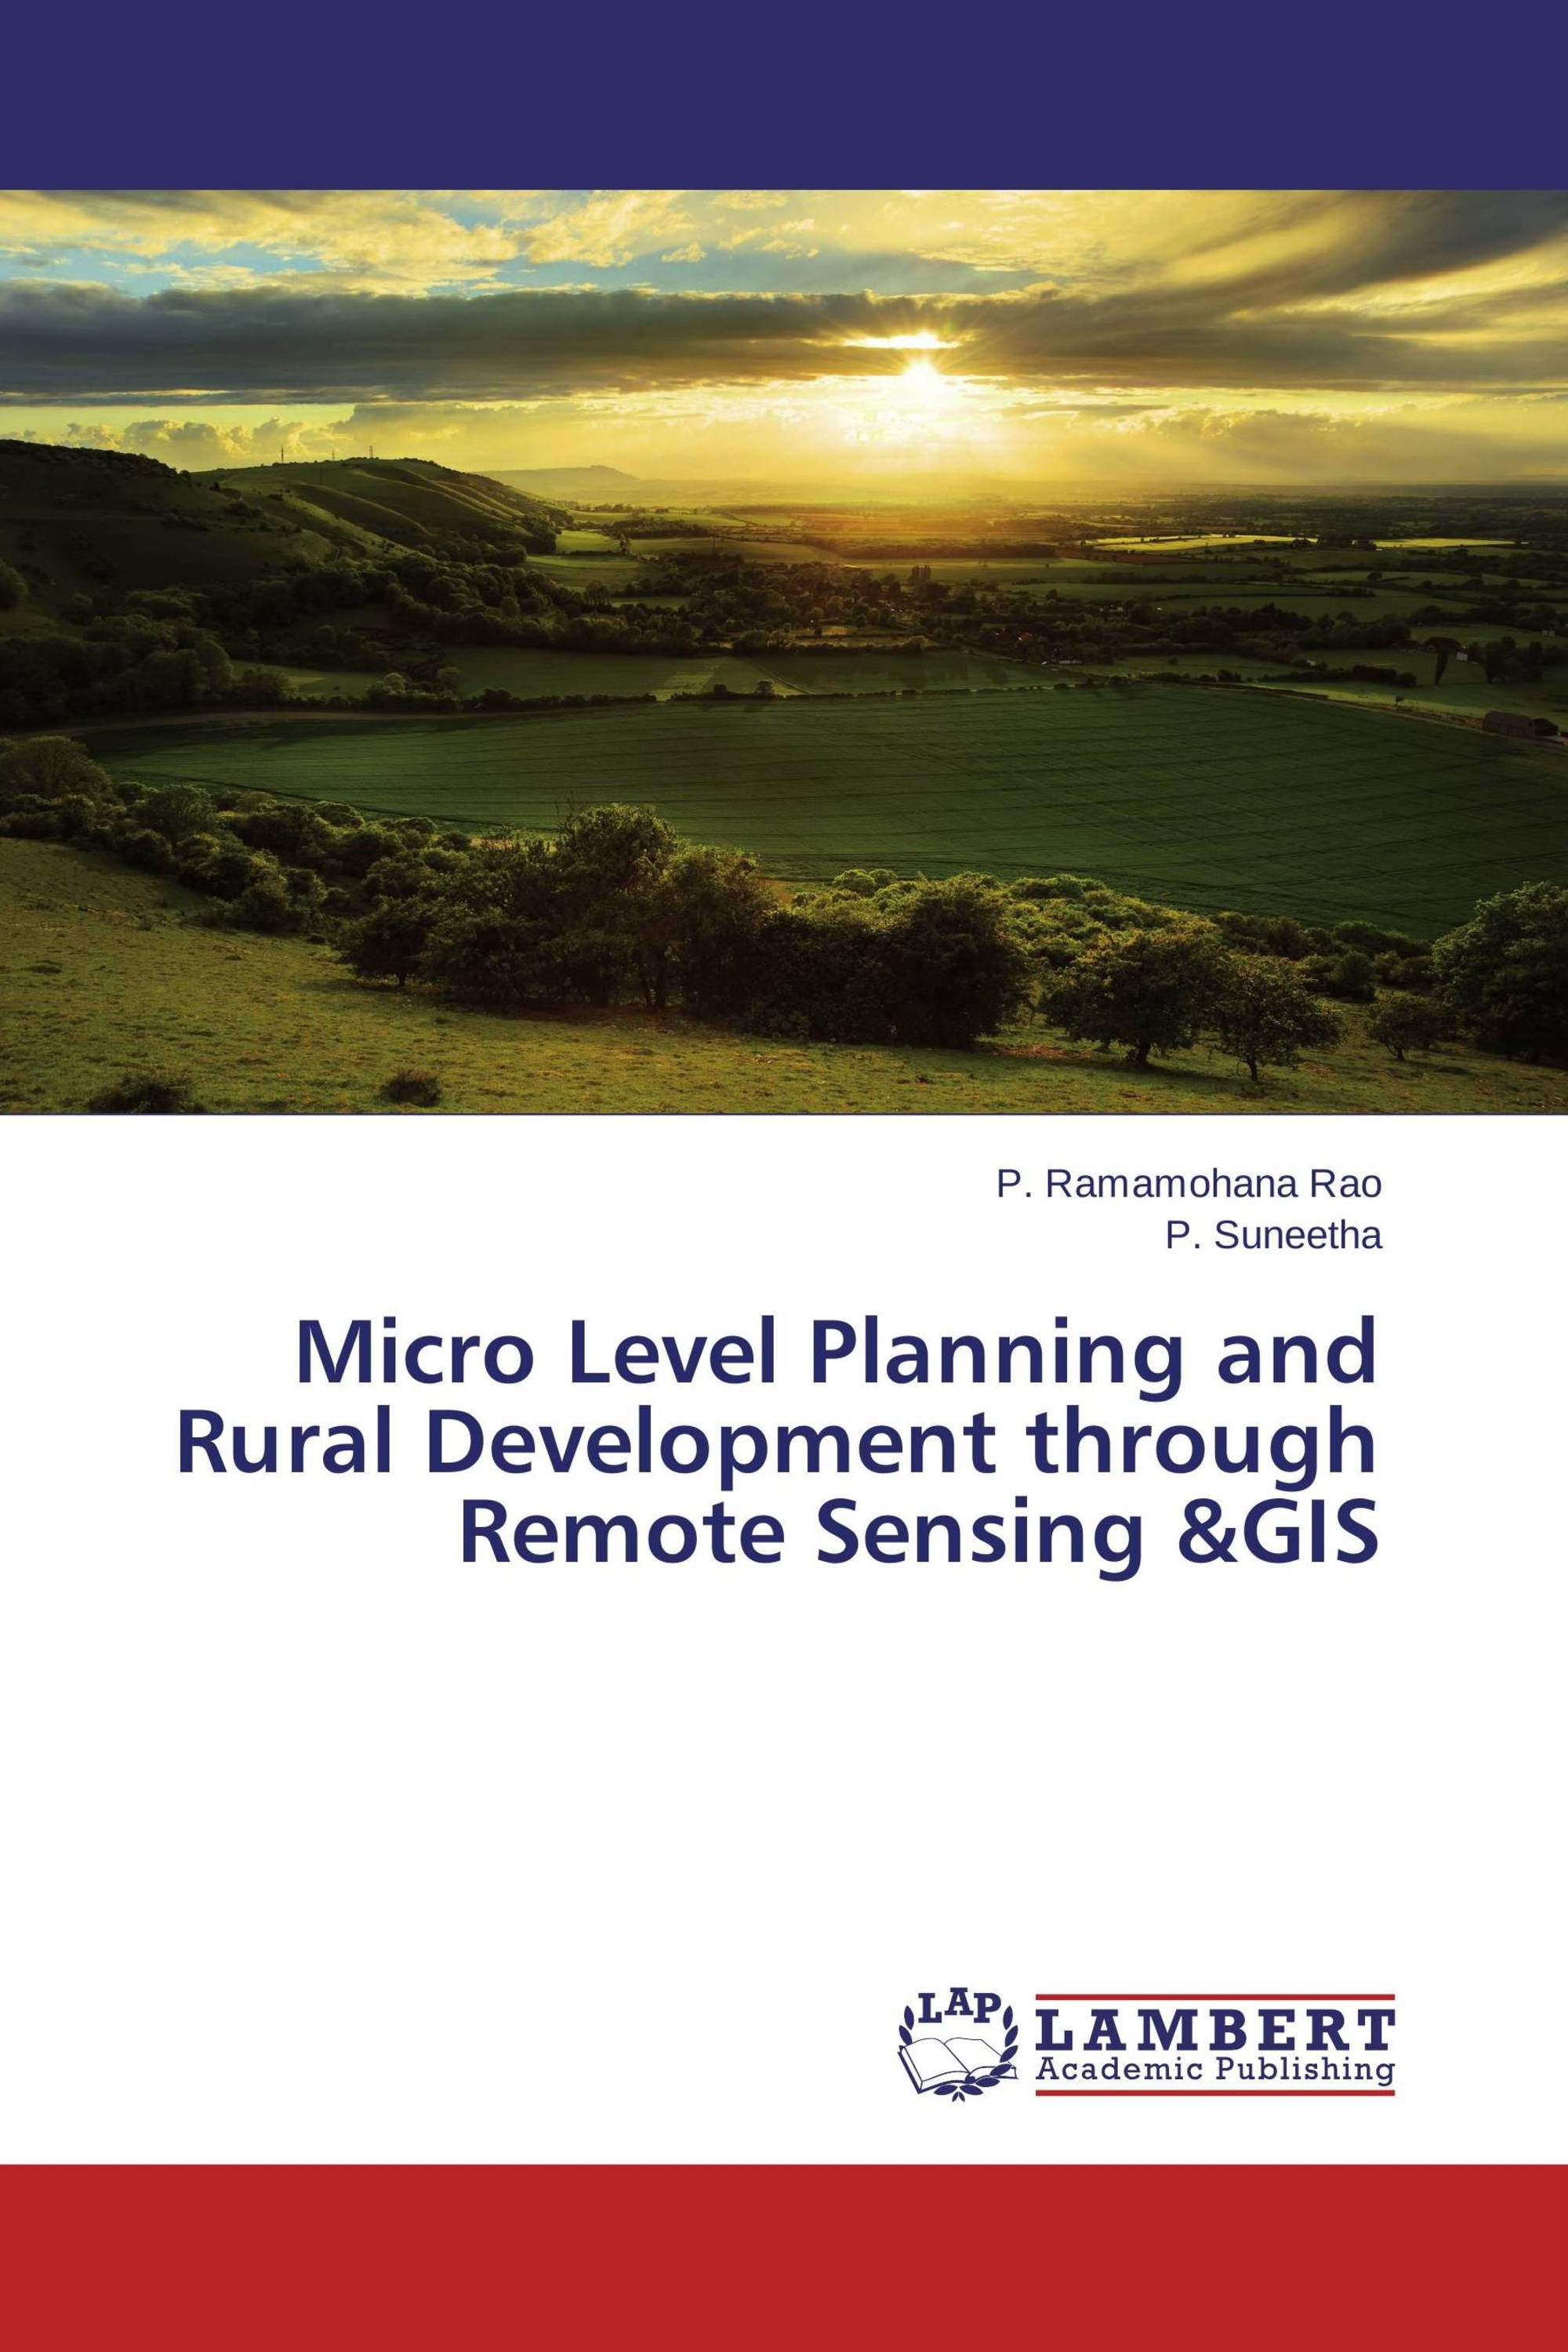 Micro Level Planning and Rural Development through Remote